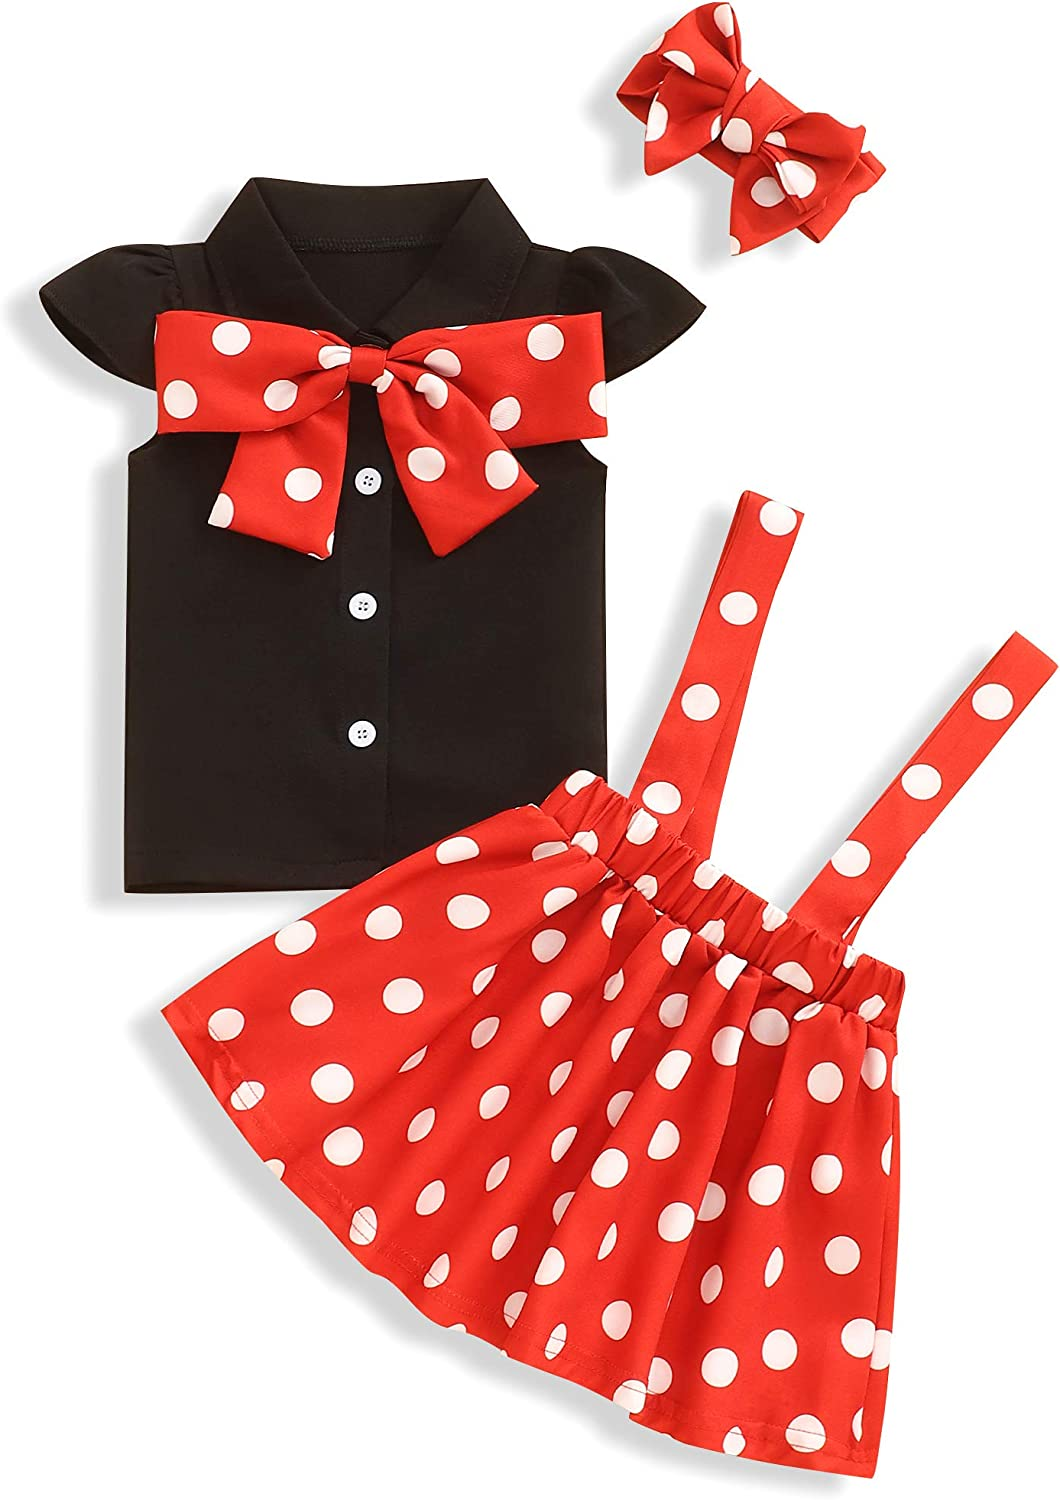 Toddler Baby Girl Outfit Polka Dot Shirt Top Suspender Skirt with Headband Clothing Sets